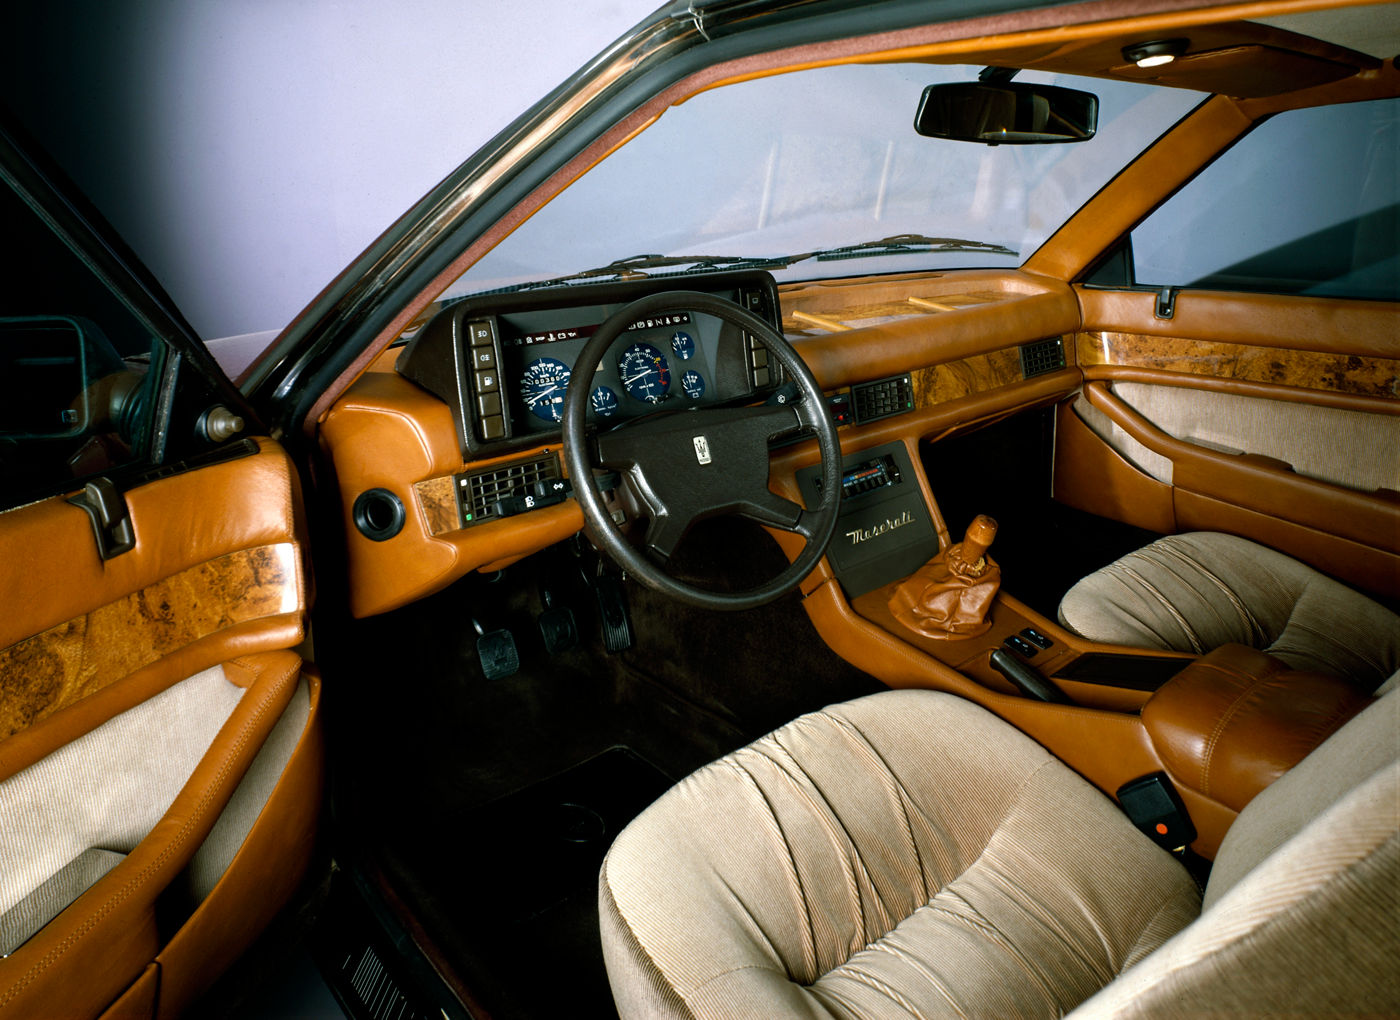 1981 Maserati Biturbo - interior view of the classic sporty coupe